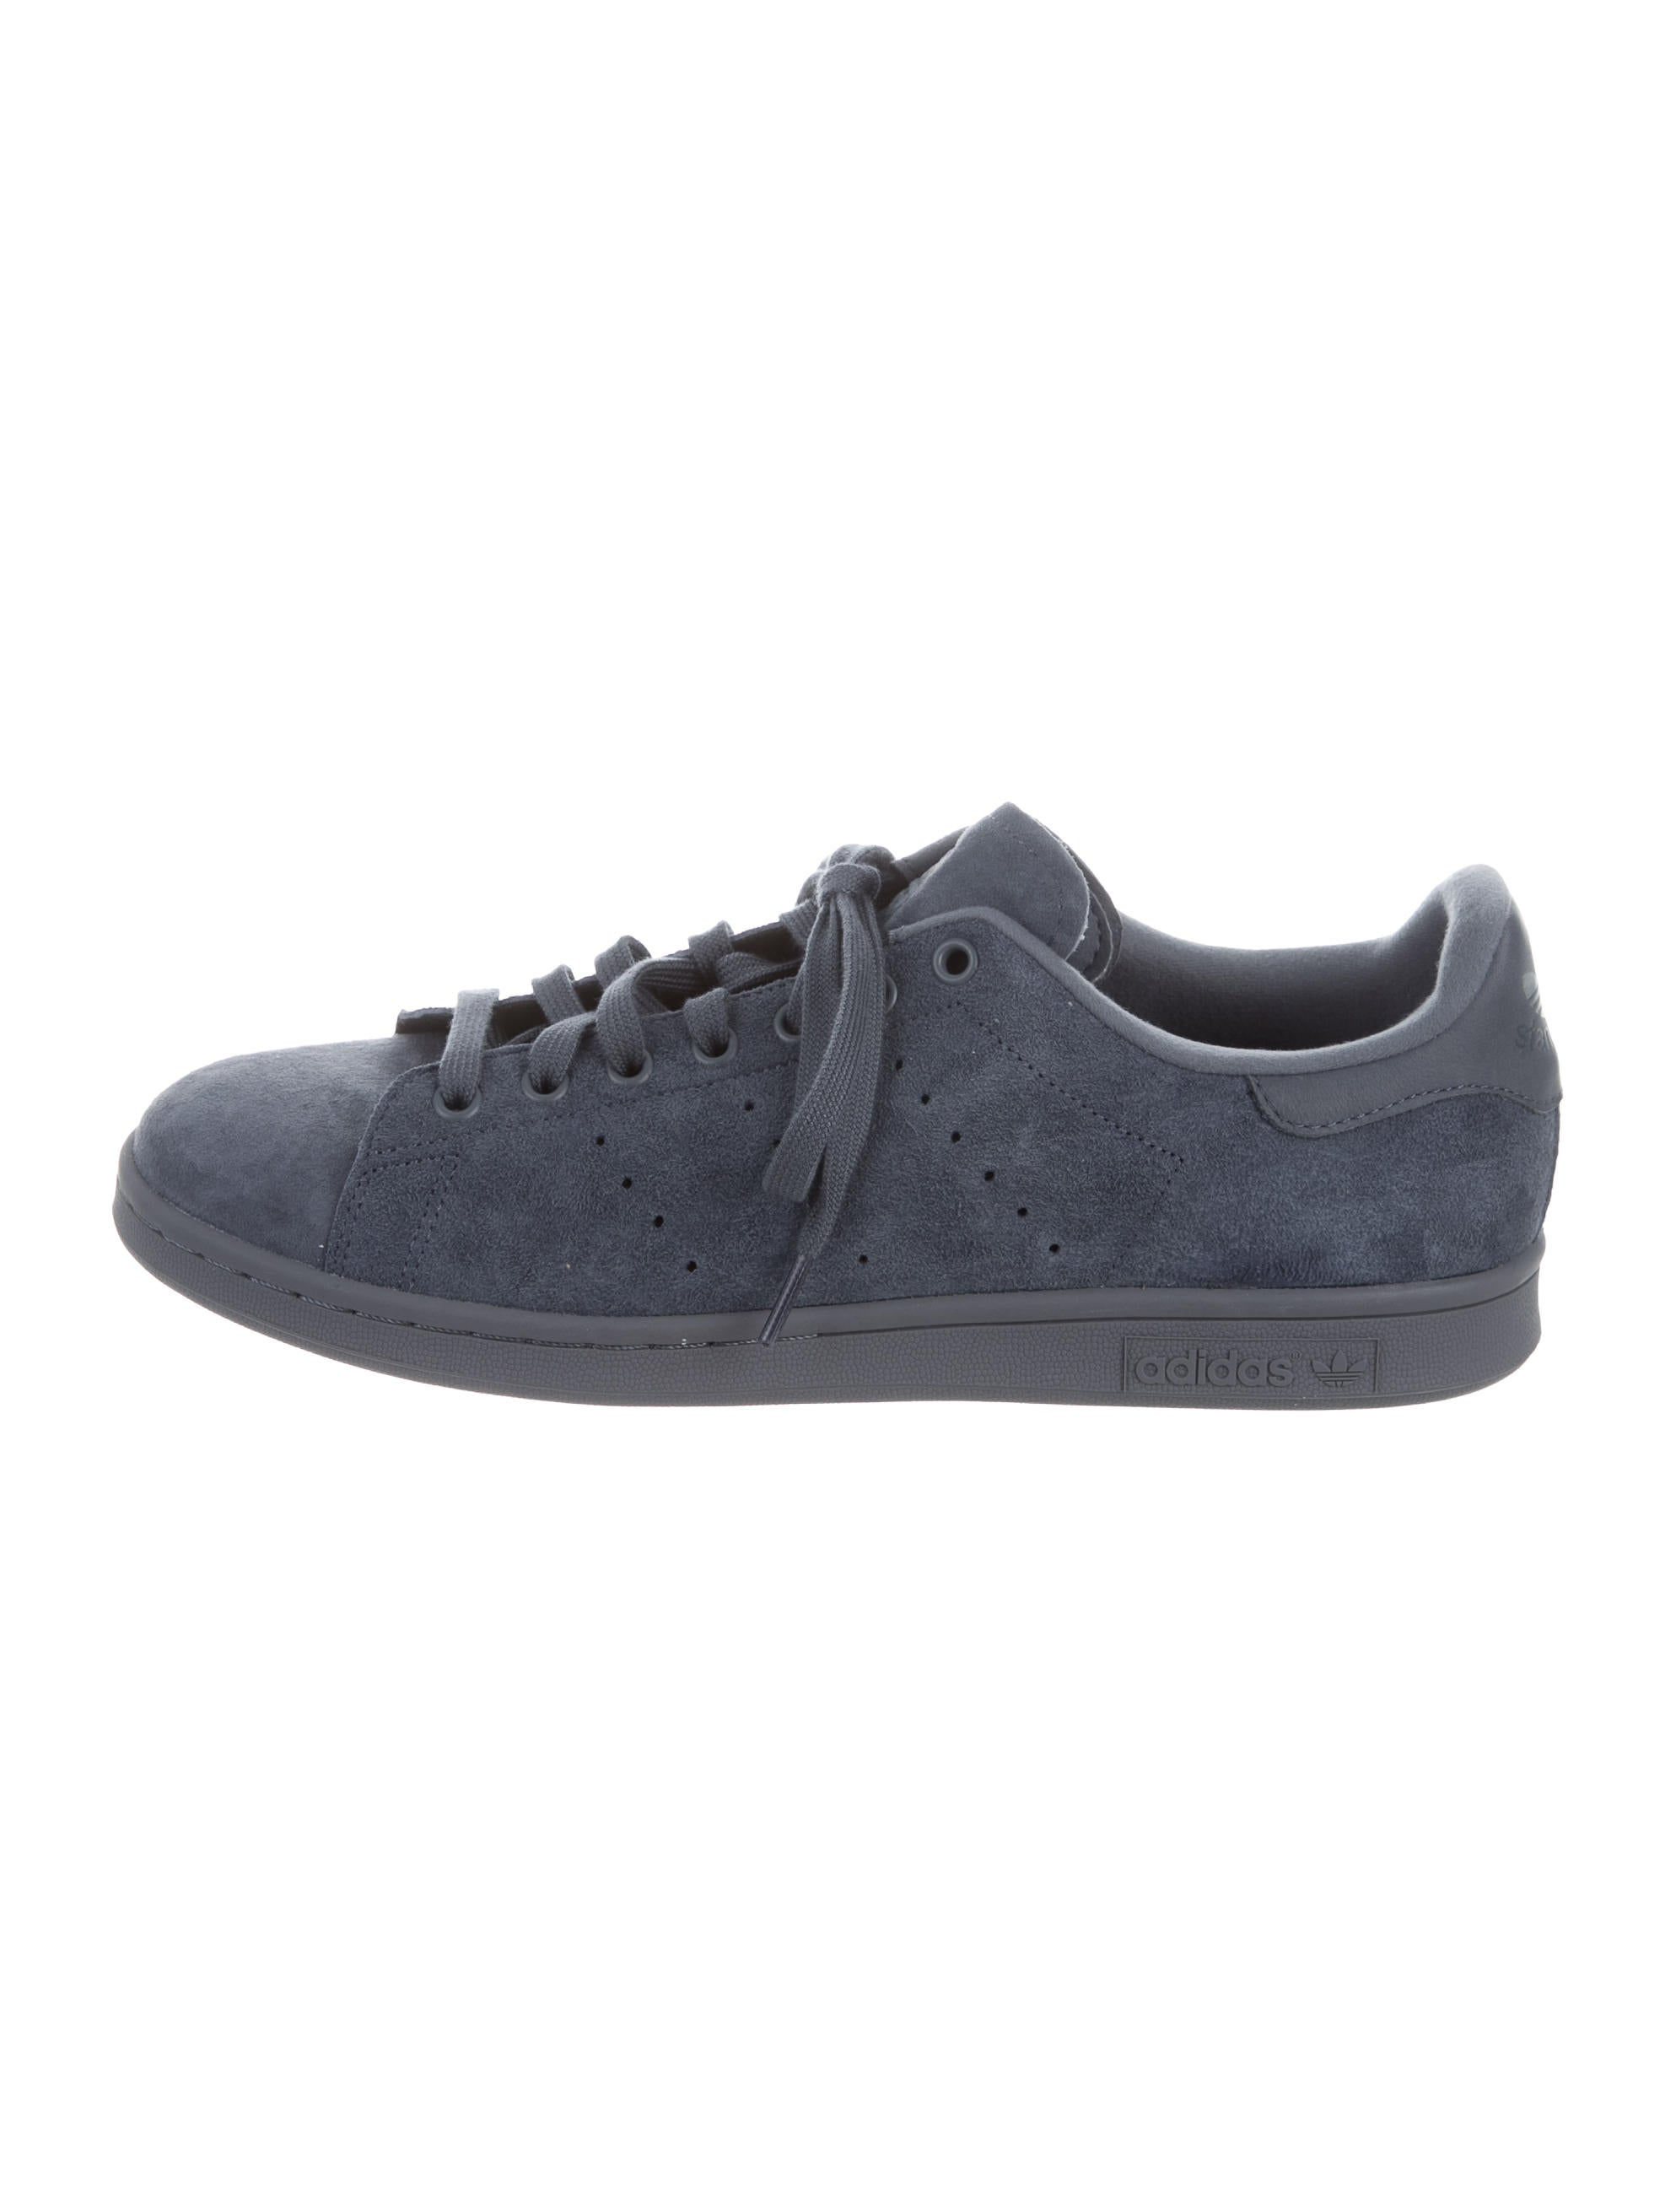 adidas suede stan smith sneakers shoes w2ads20286 the realreal. Black Bedroom Furniture Sets. Home Design Ideas